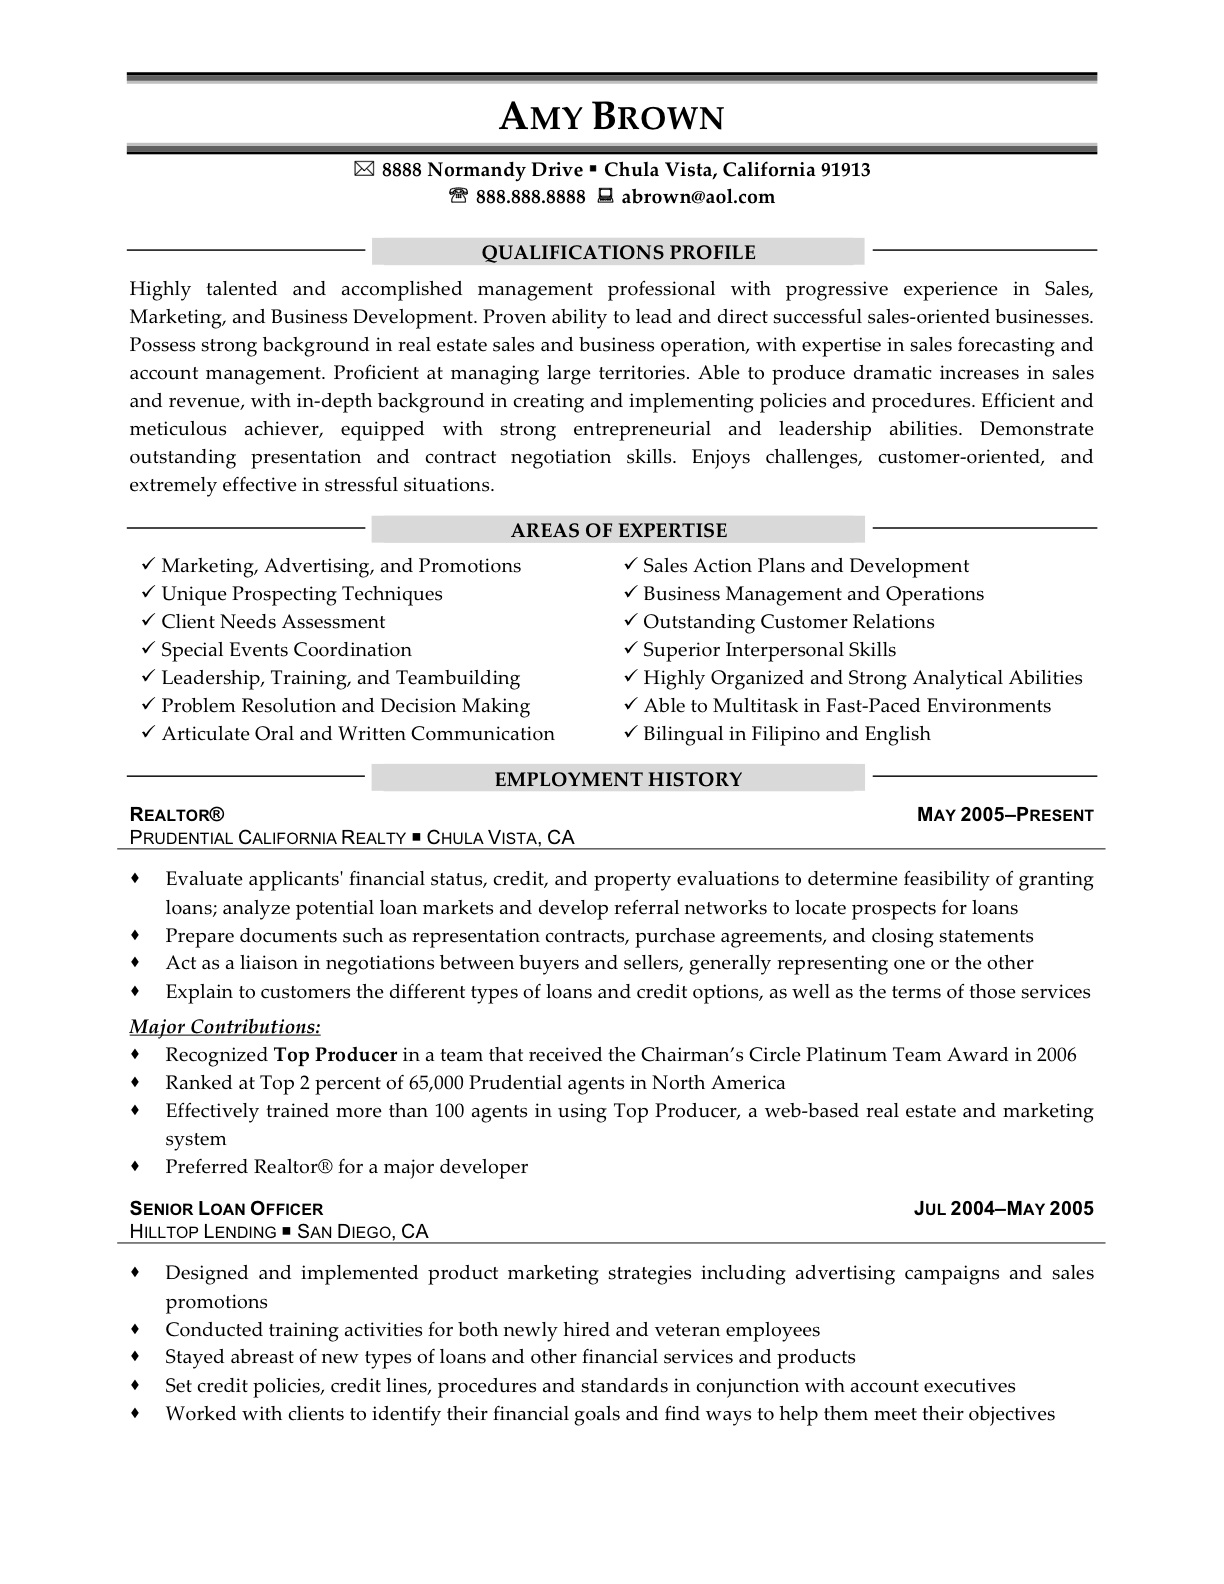 Independent Consultant Resume Resume Samples Real Estate Consultant Resume